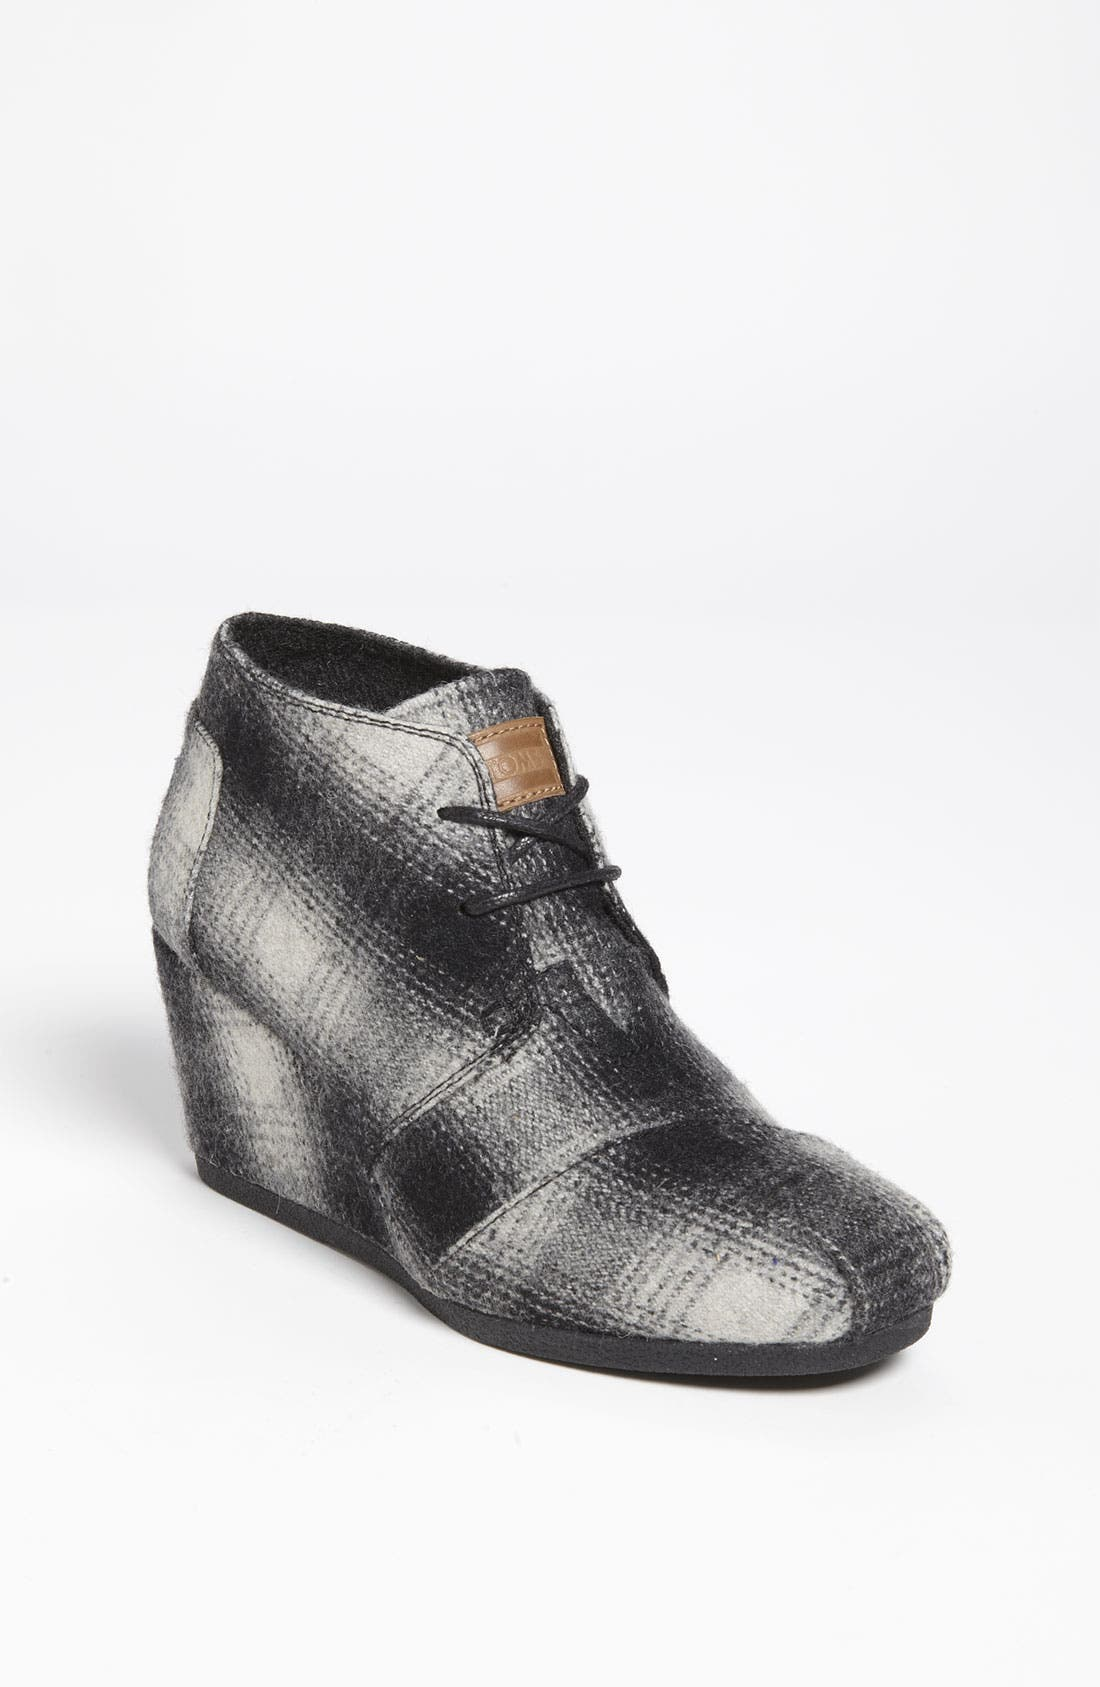 Alternate Image 1 Selected - TOMS 'Desert - Plaid' Wedge